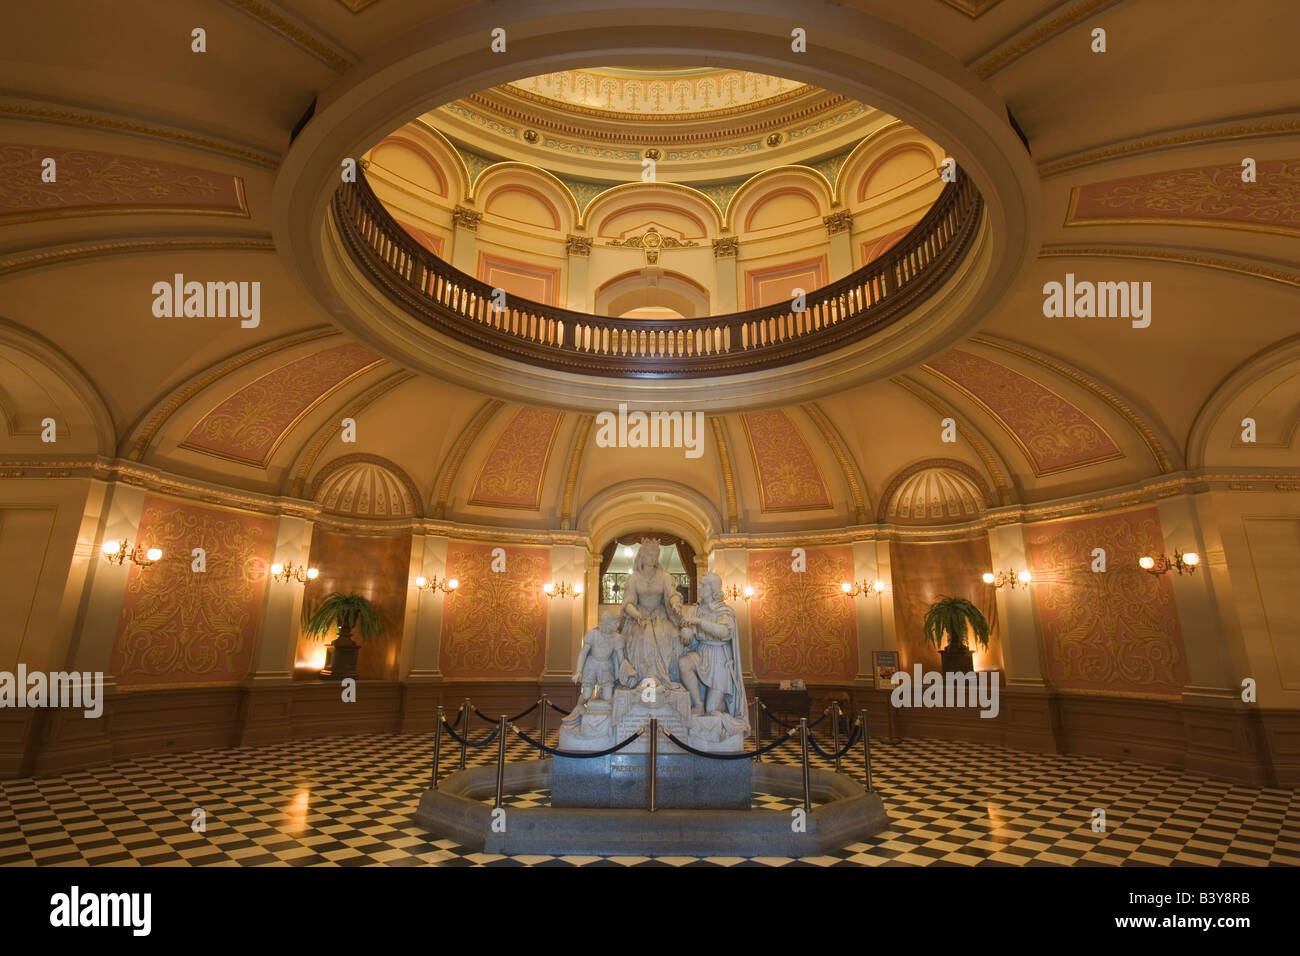 Image result for rotunda inside